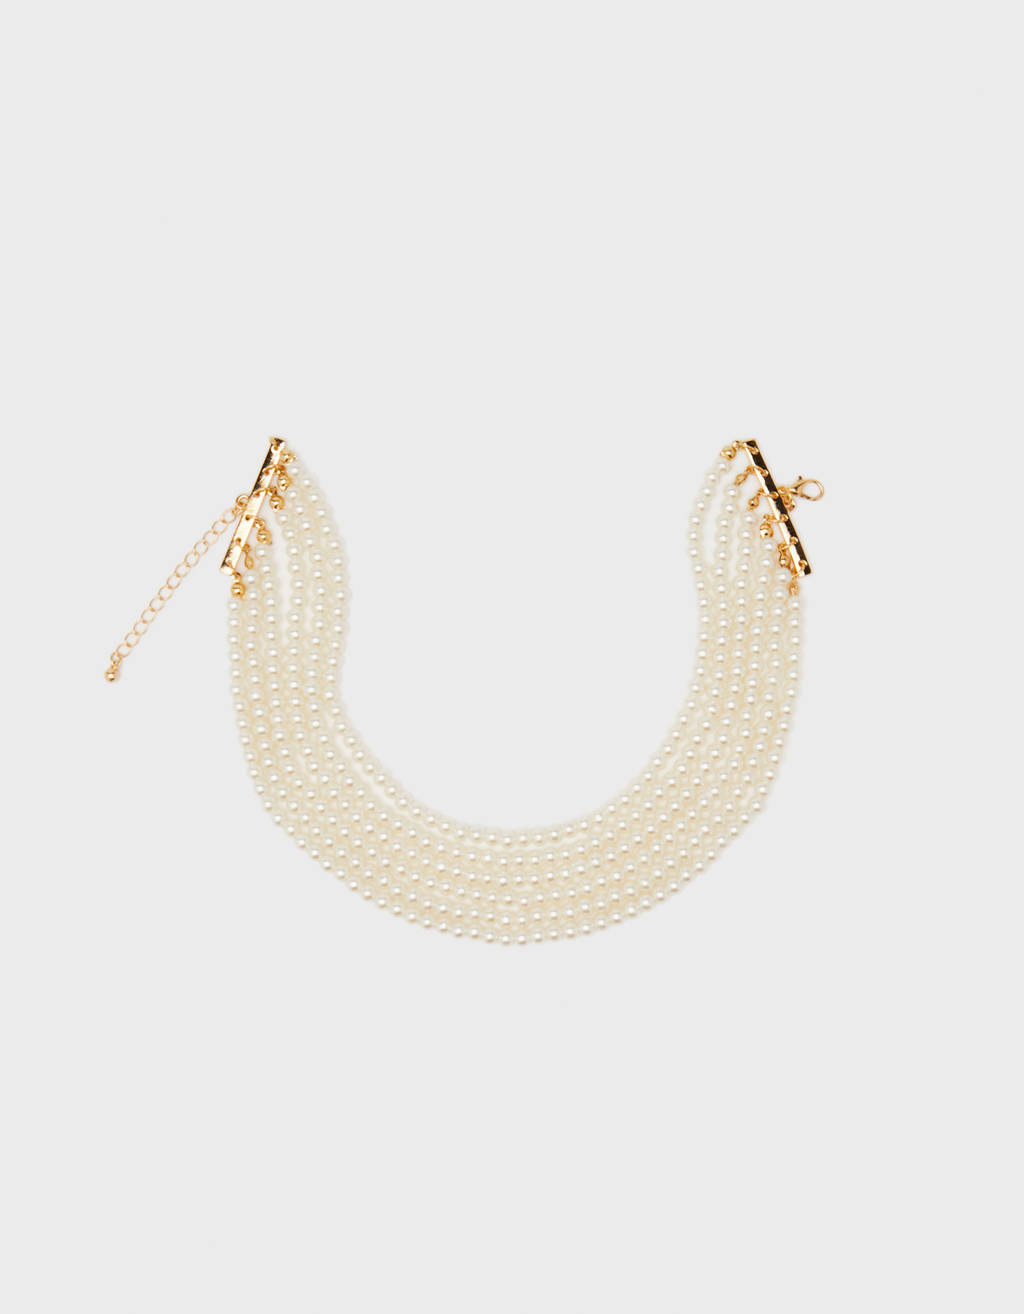 Choker necklace with faux pearls